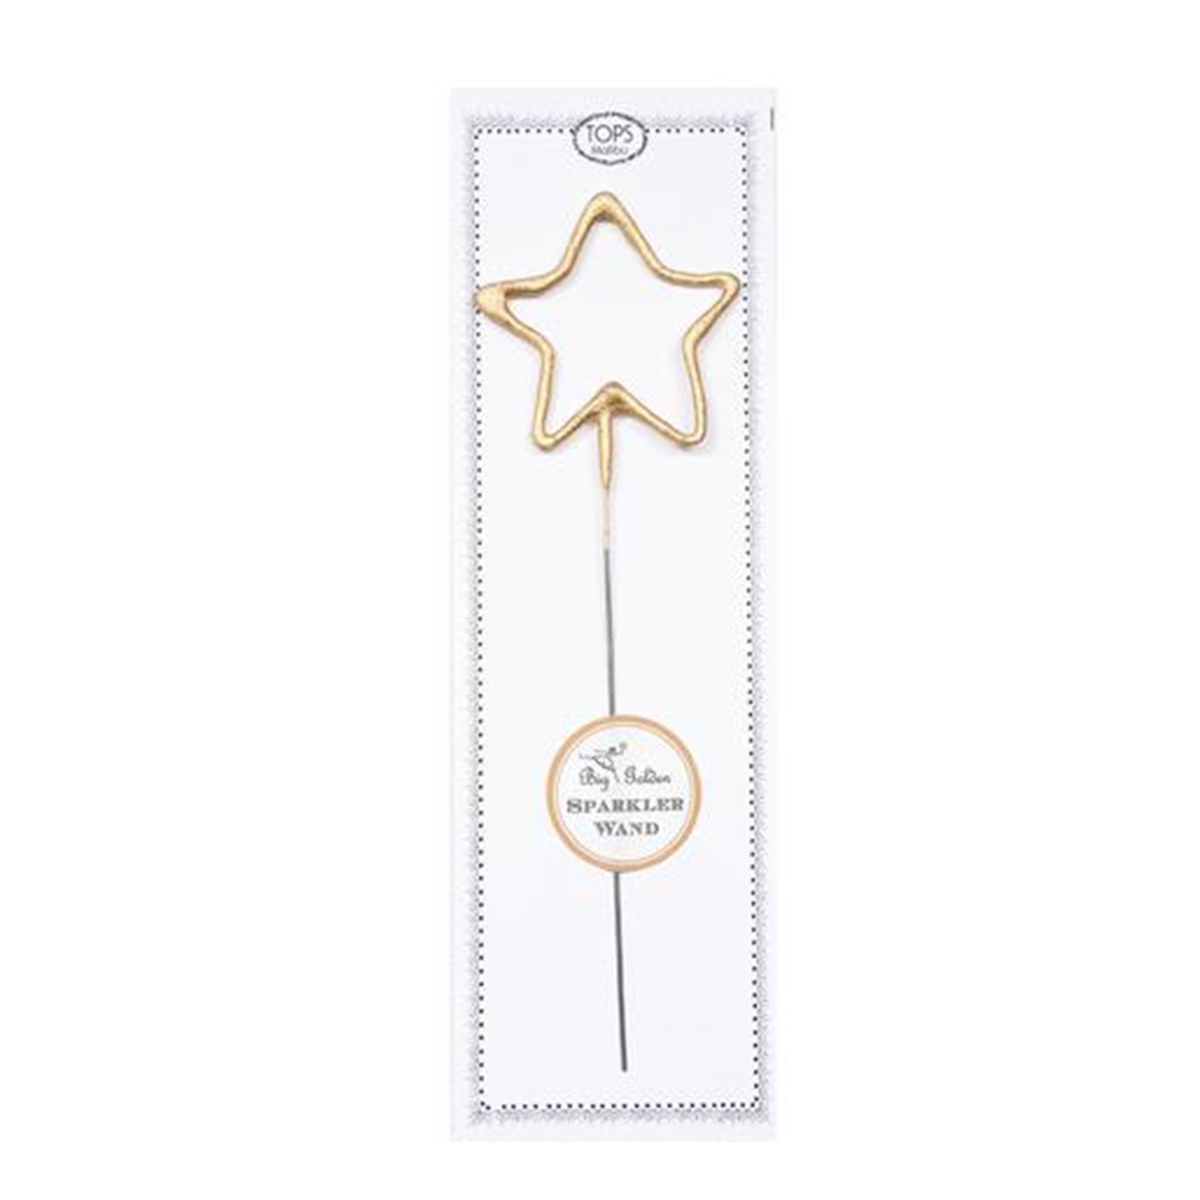 Gold star-shaped sparklers photo